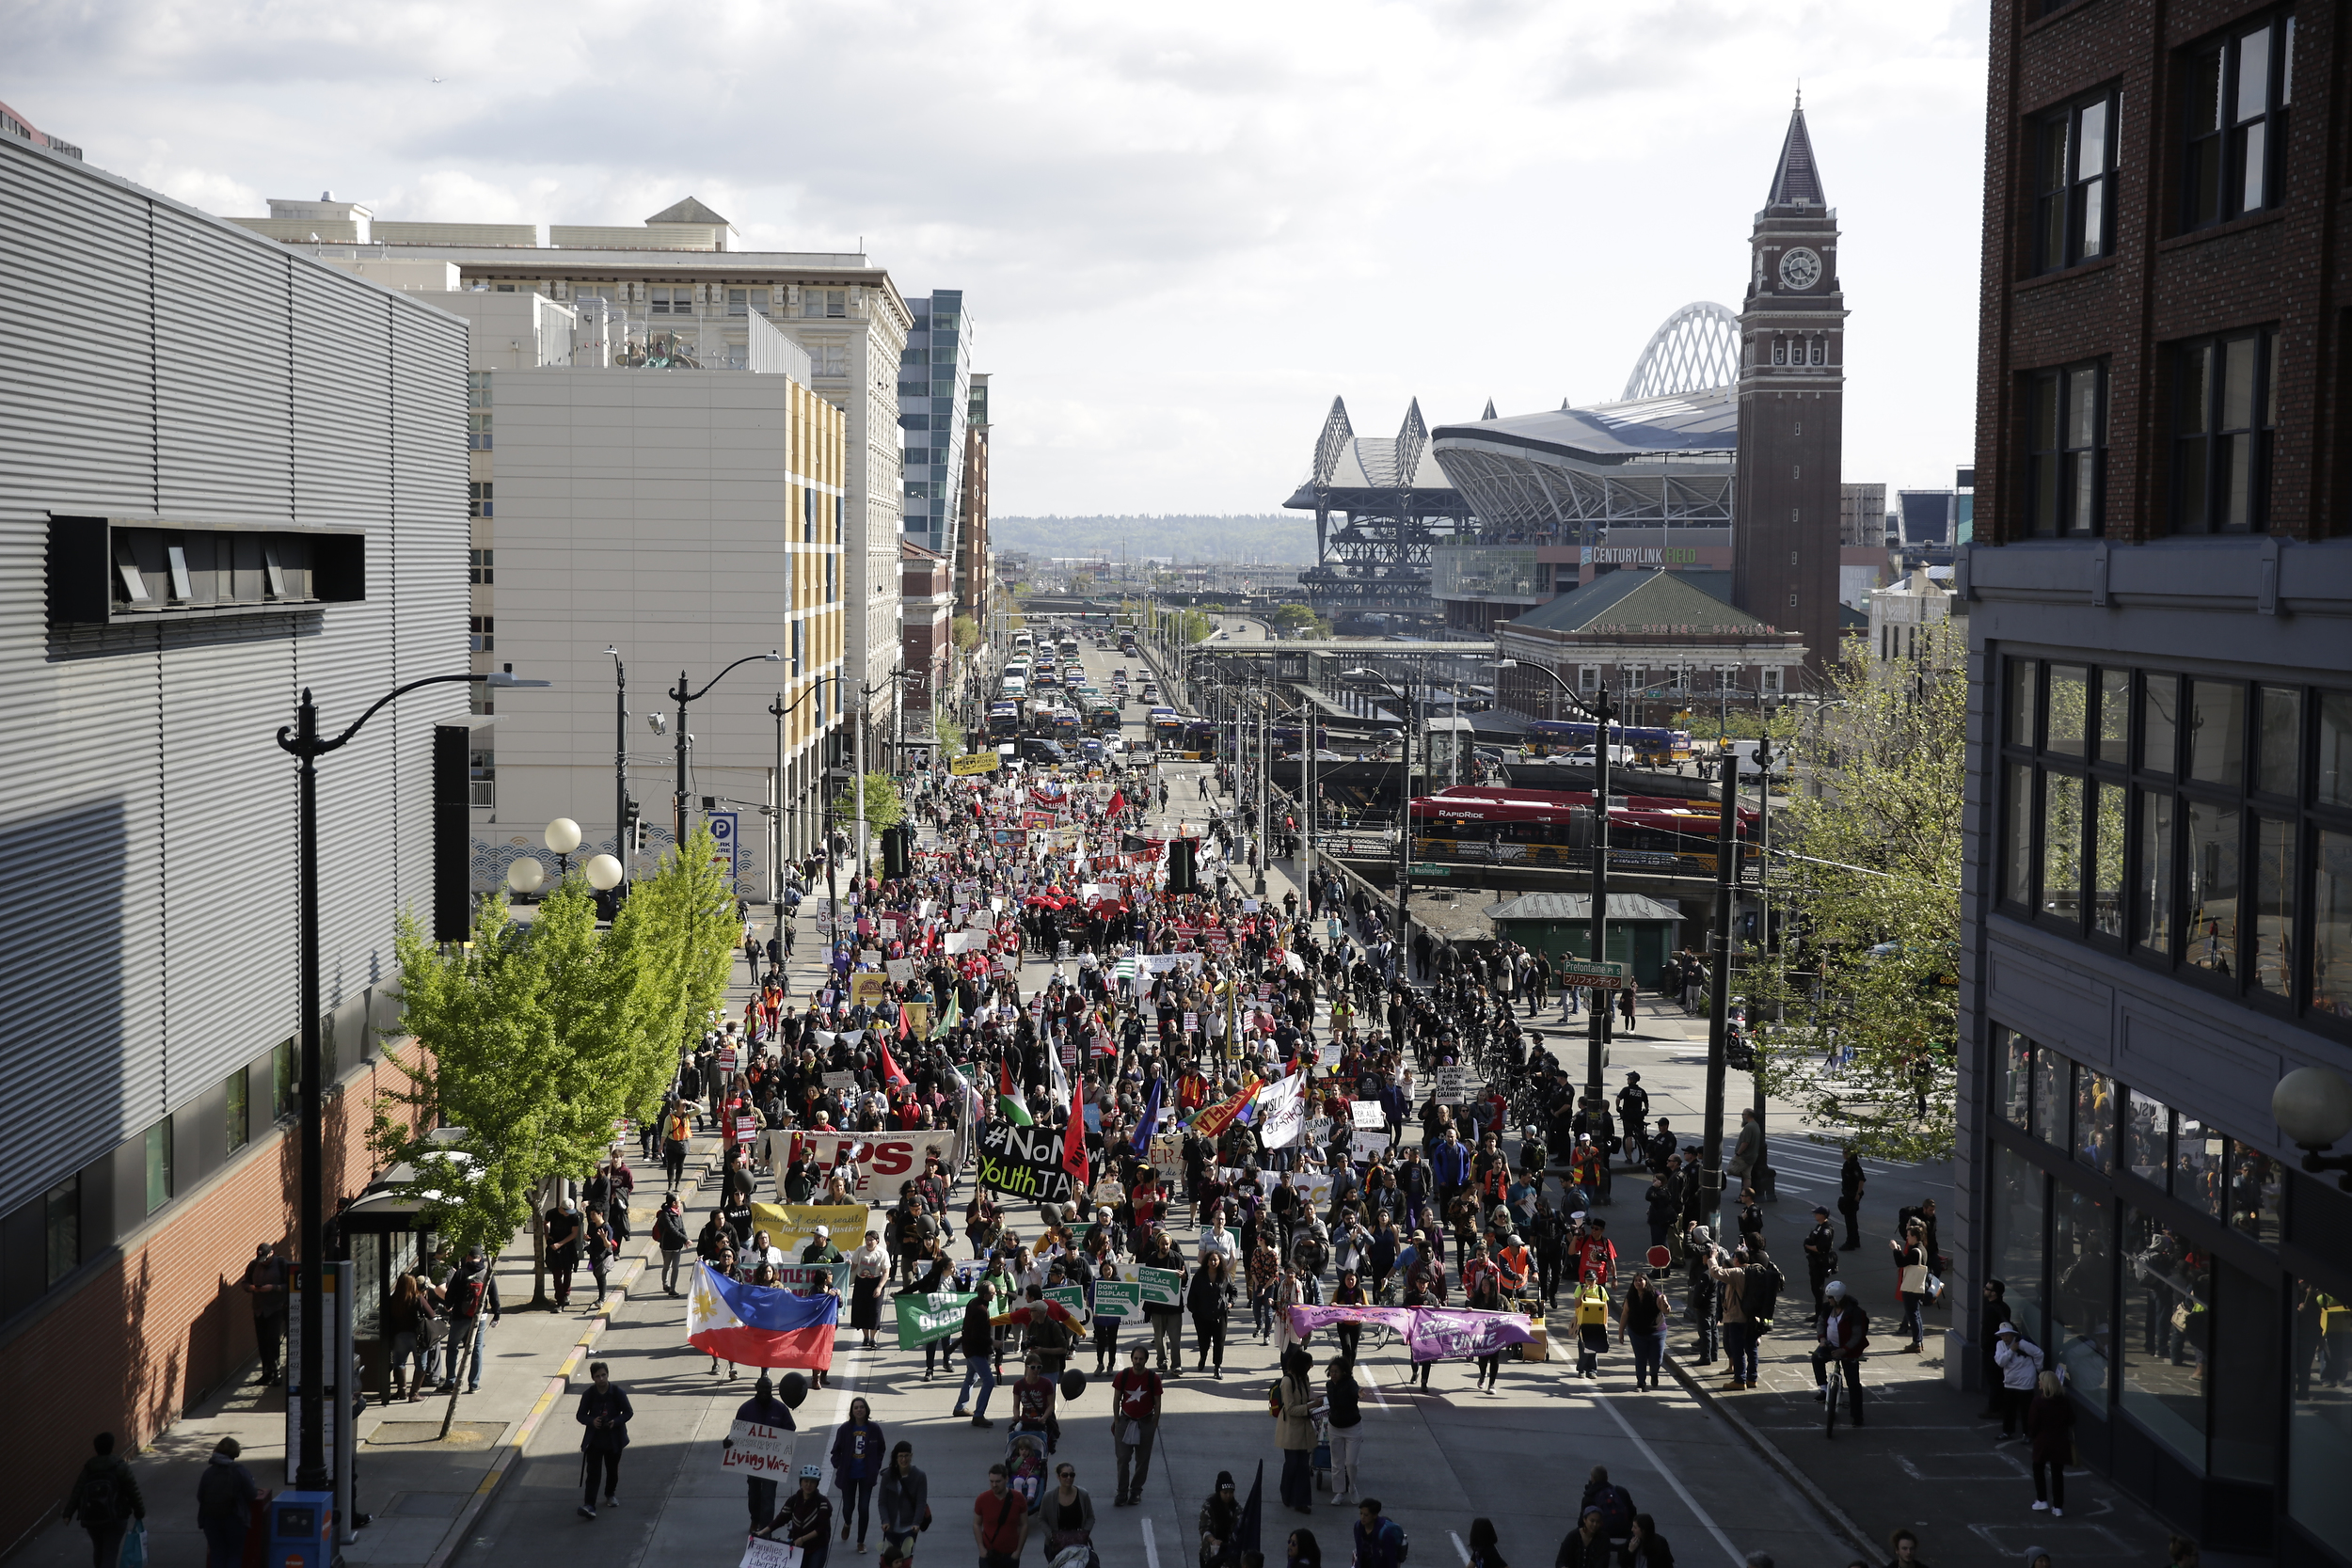 Marchers make their way onto 4th Avenue South from South Jackson Street during the annual May Day March for Workers and Immigrant Rights in Seattle, May 1, 2018.